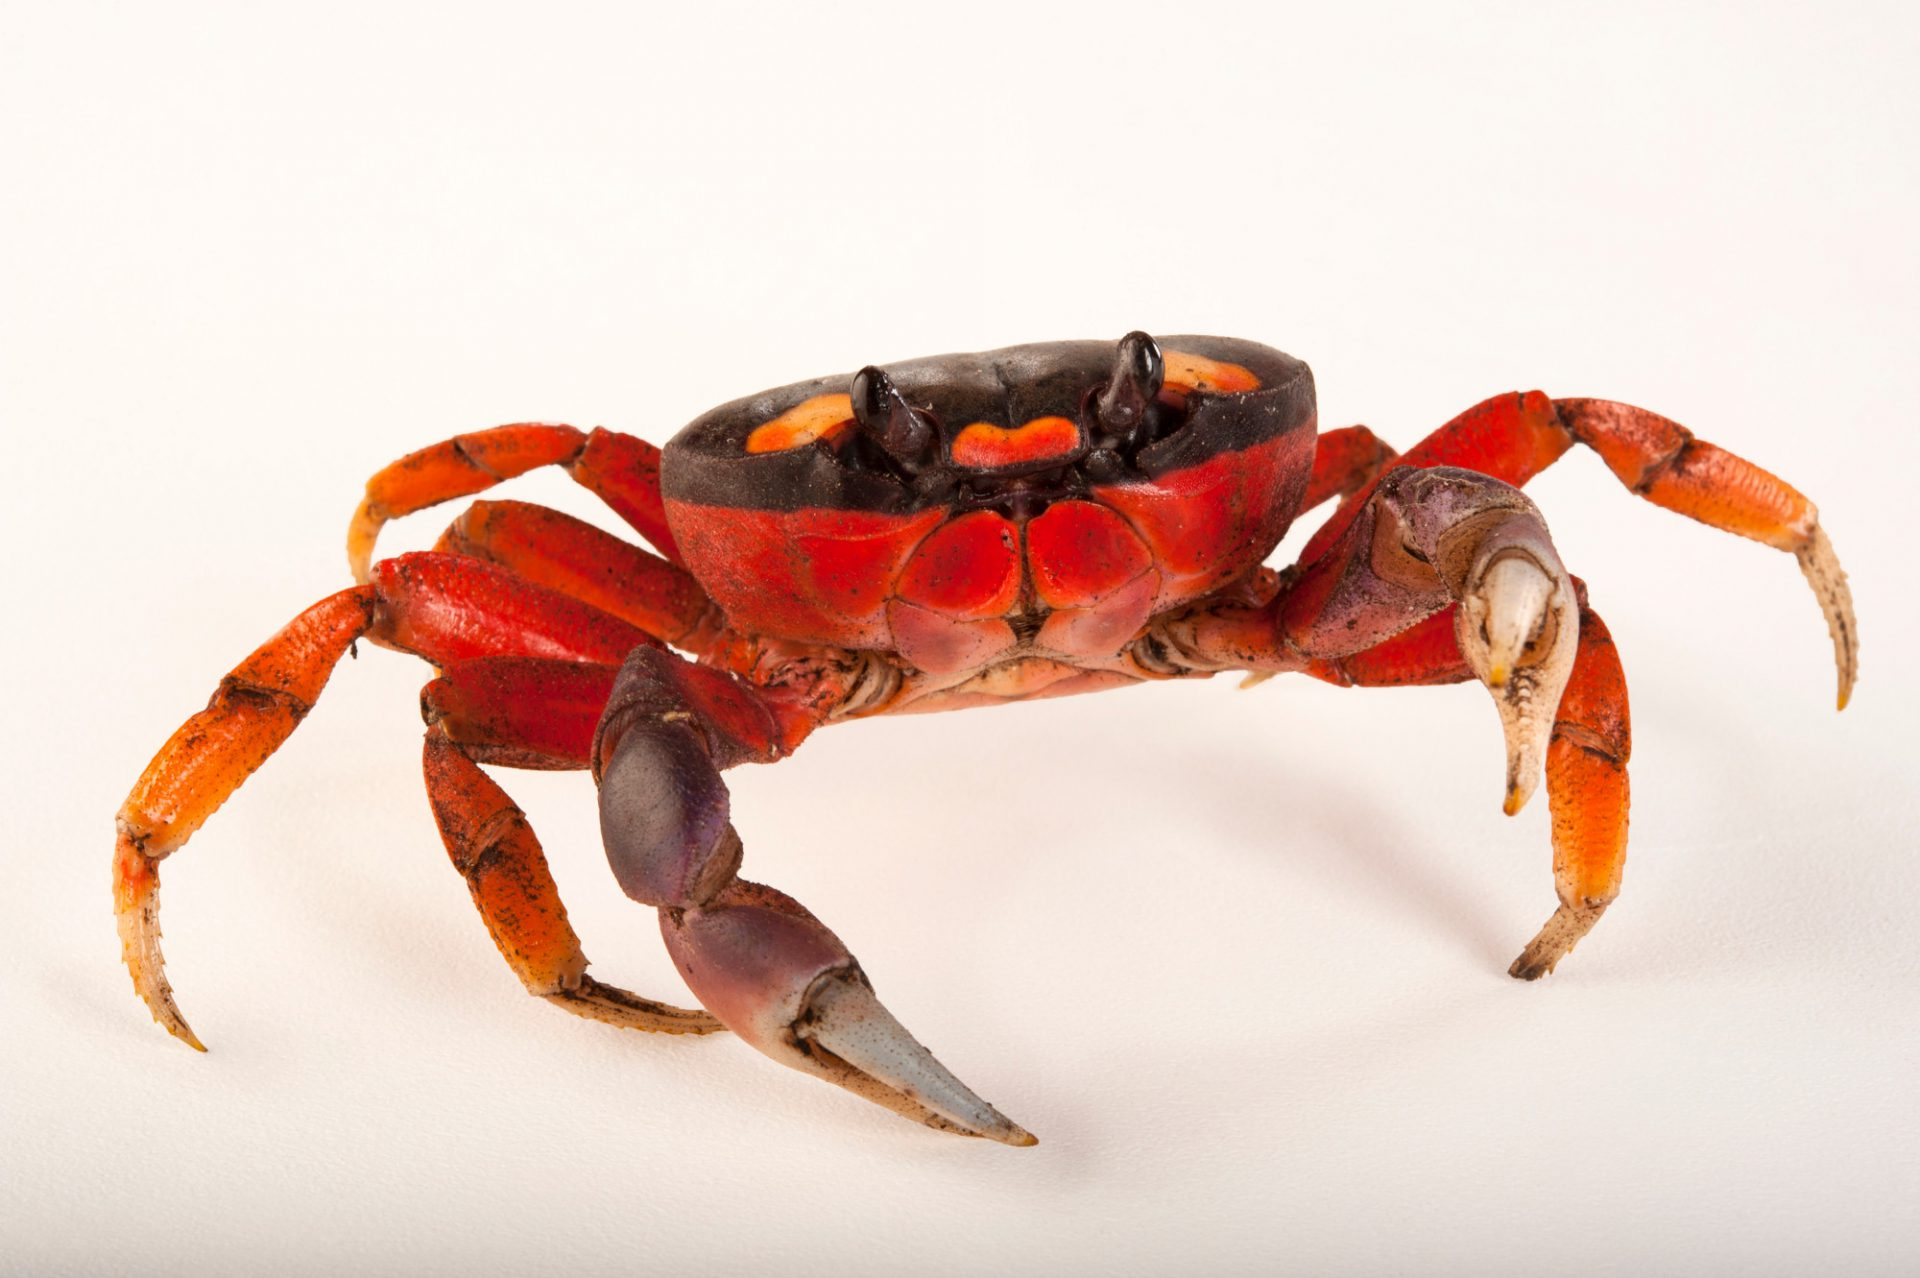 A Halloween crab (Gecarcinus quadratus) at the Audubon Zoo in New Orleans, Louisiana.